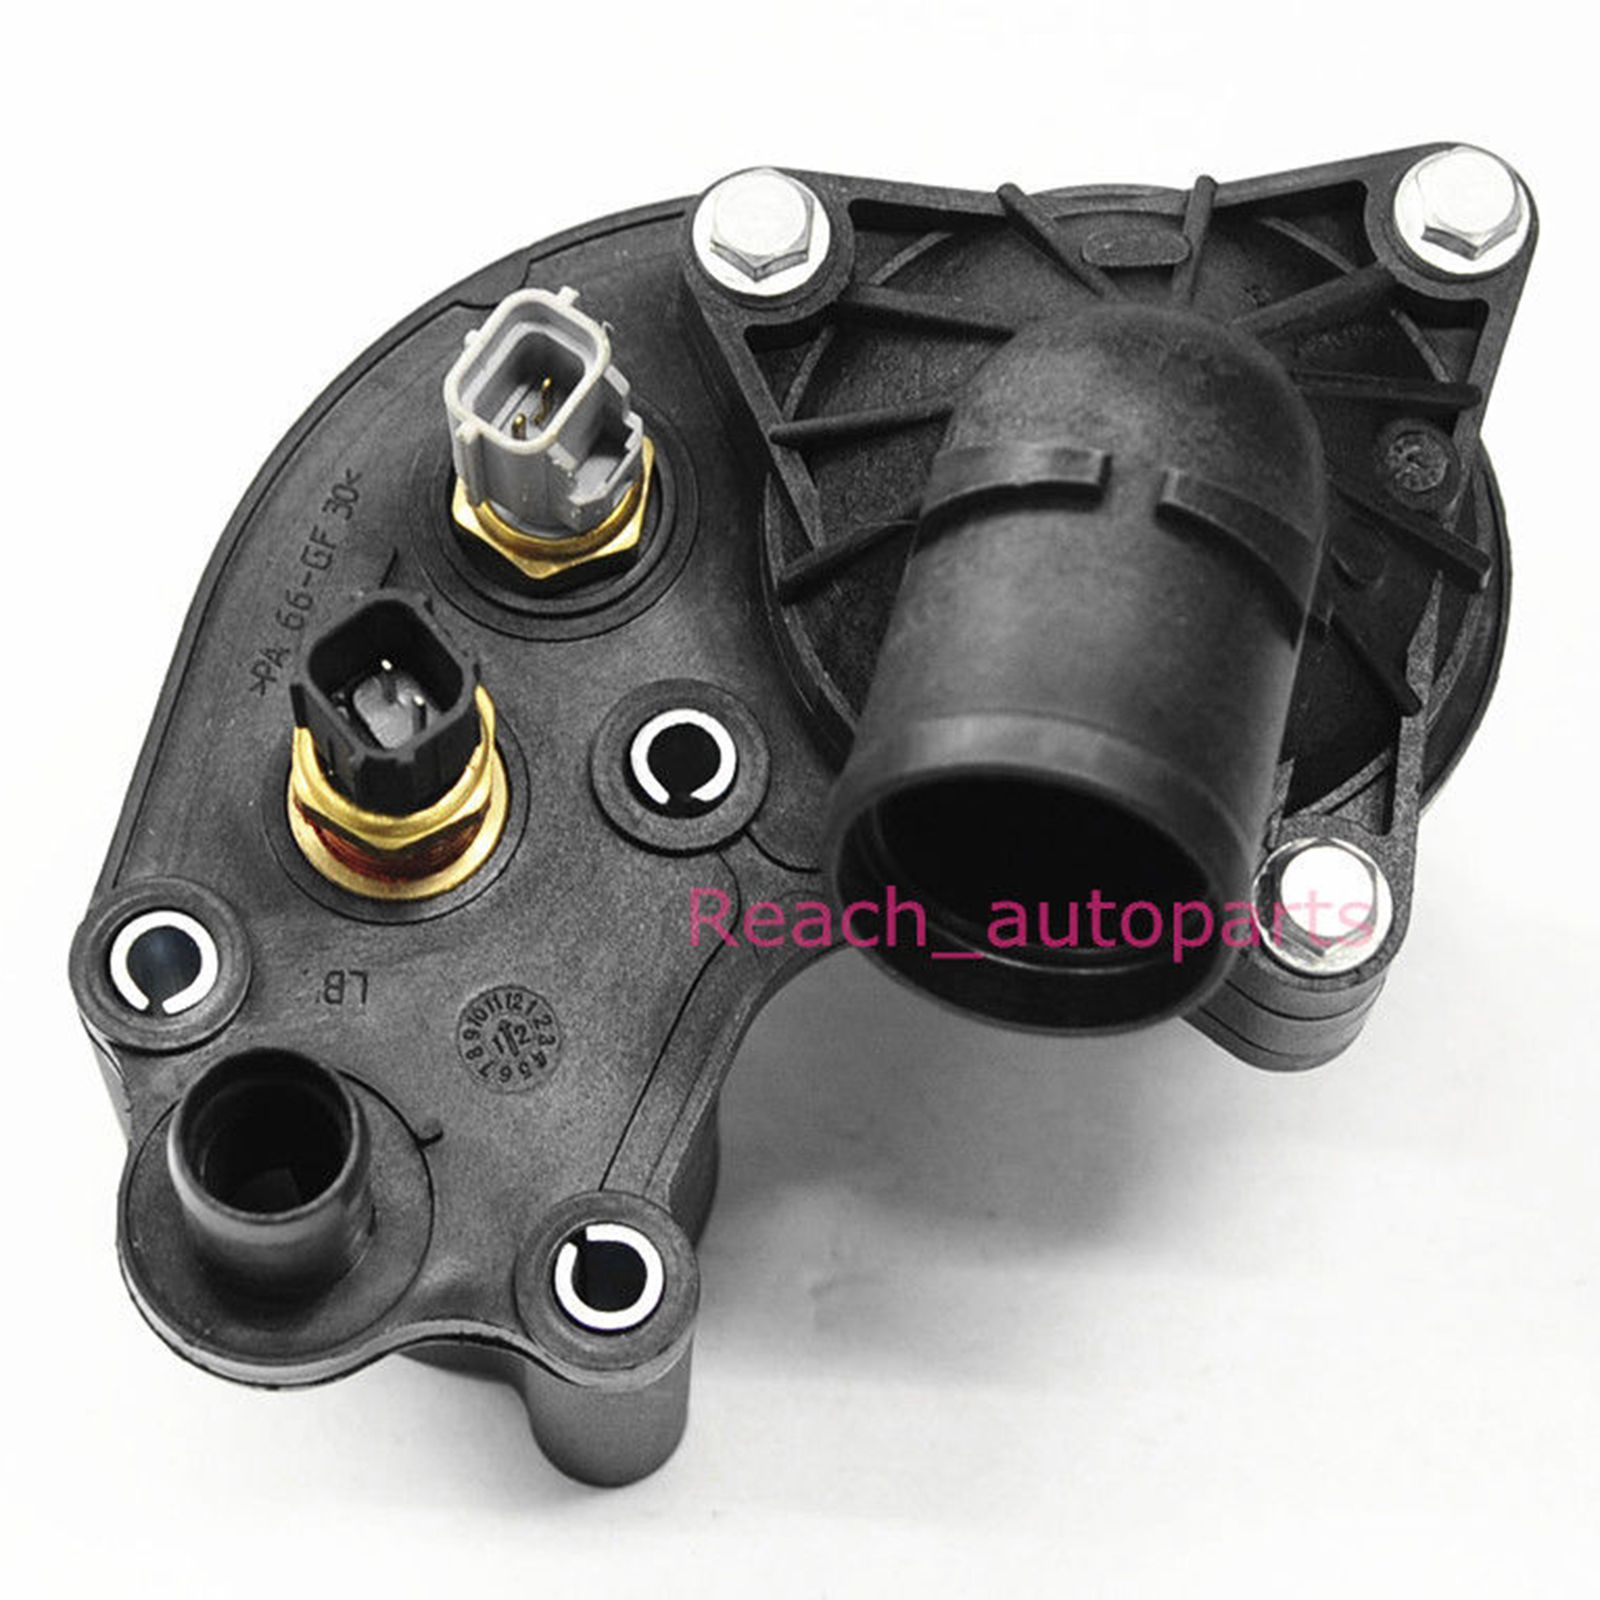 Thermostat Housing W Sensors For 97 01 Ford Explorer Mountaineer 4 0l V6 Oe Yu3z 8a586 Aa Yu3z 8a586 Yu3z8a Ford Explorer Electronic Products Gaming Products